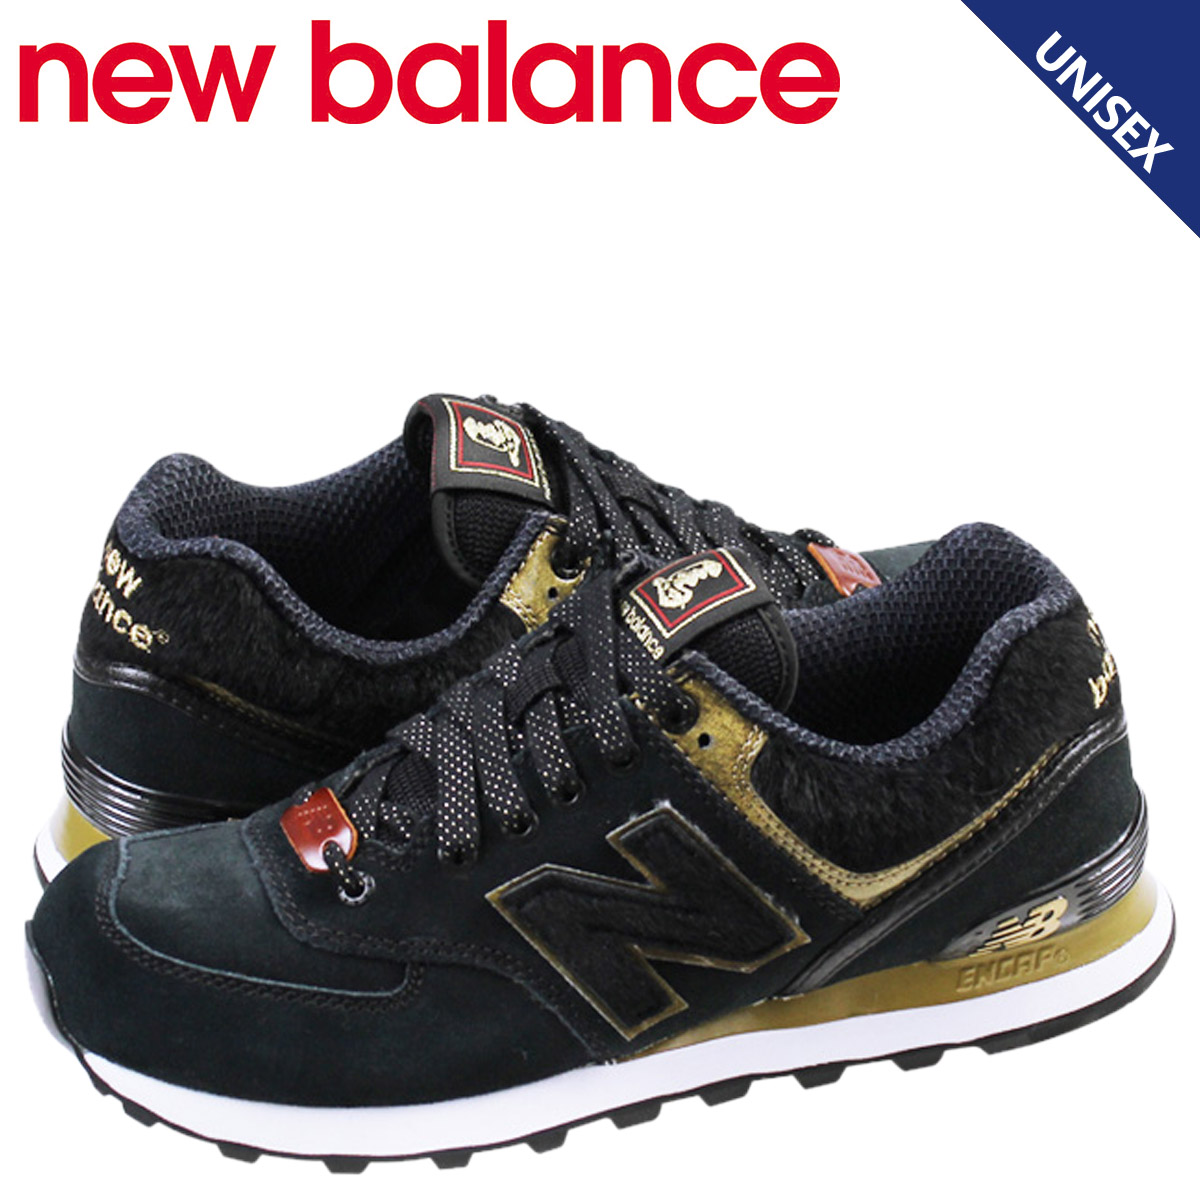 the latest 65b71 743ac new balance New Balance 574 Lady's sneakers ML574HBL D Wise Year of the  Horse men shoes black